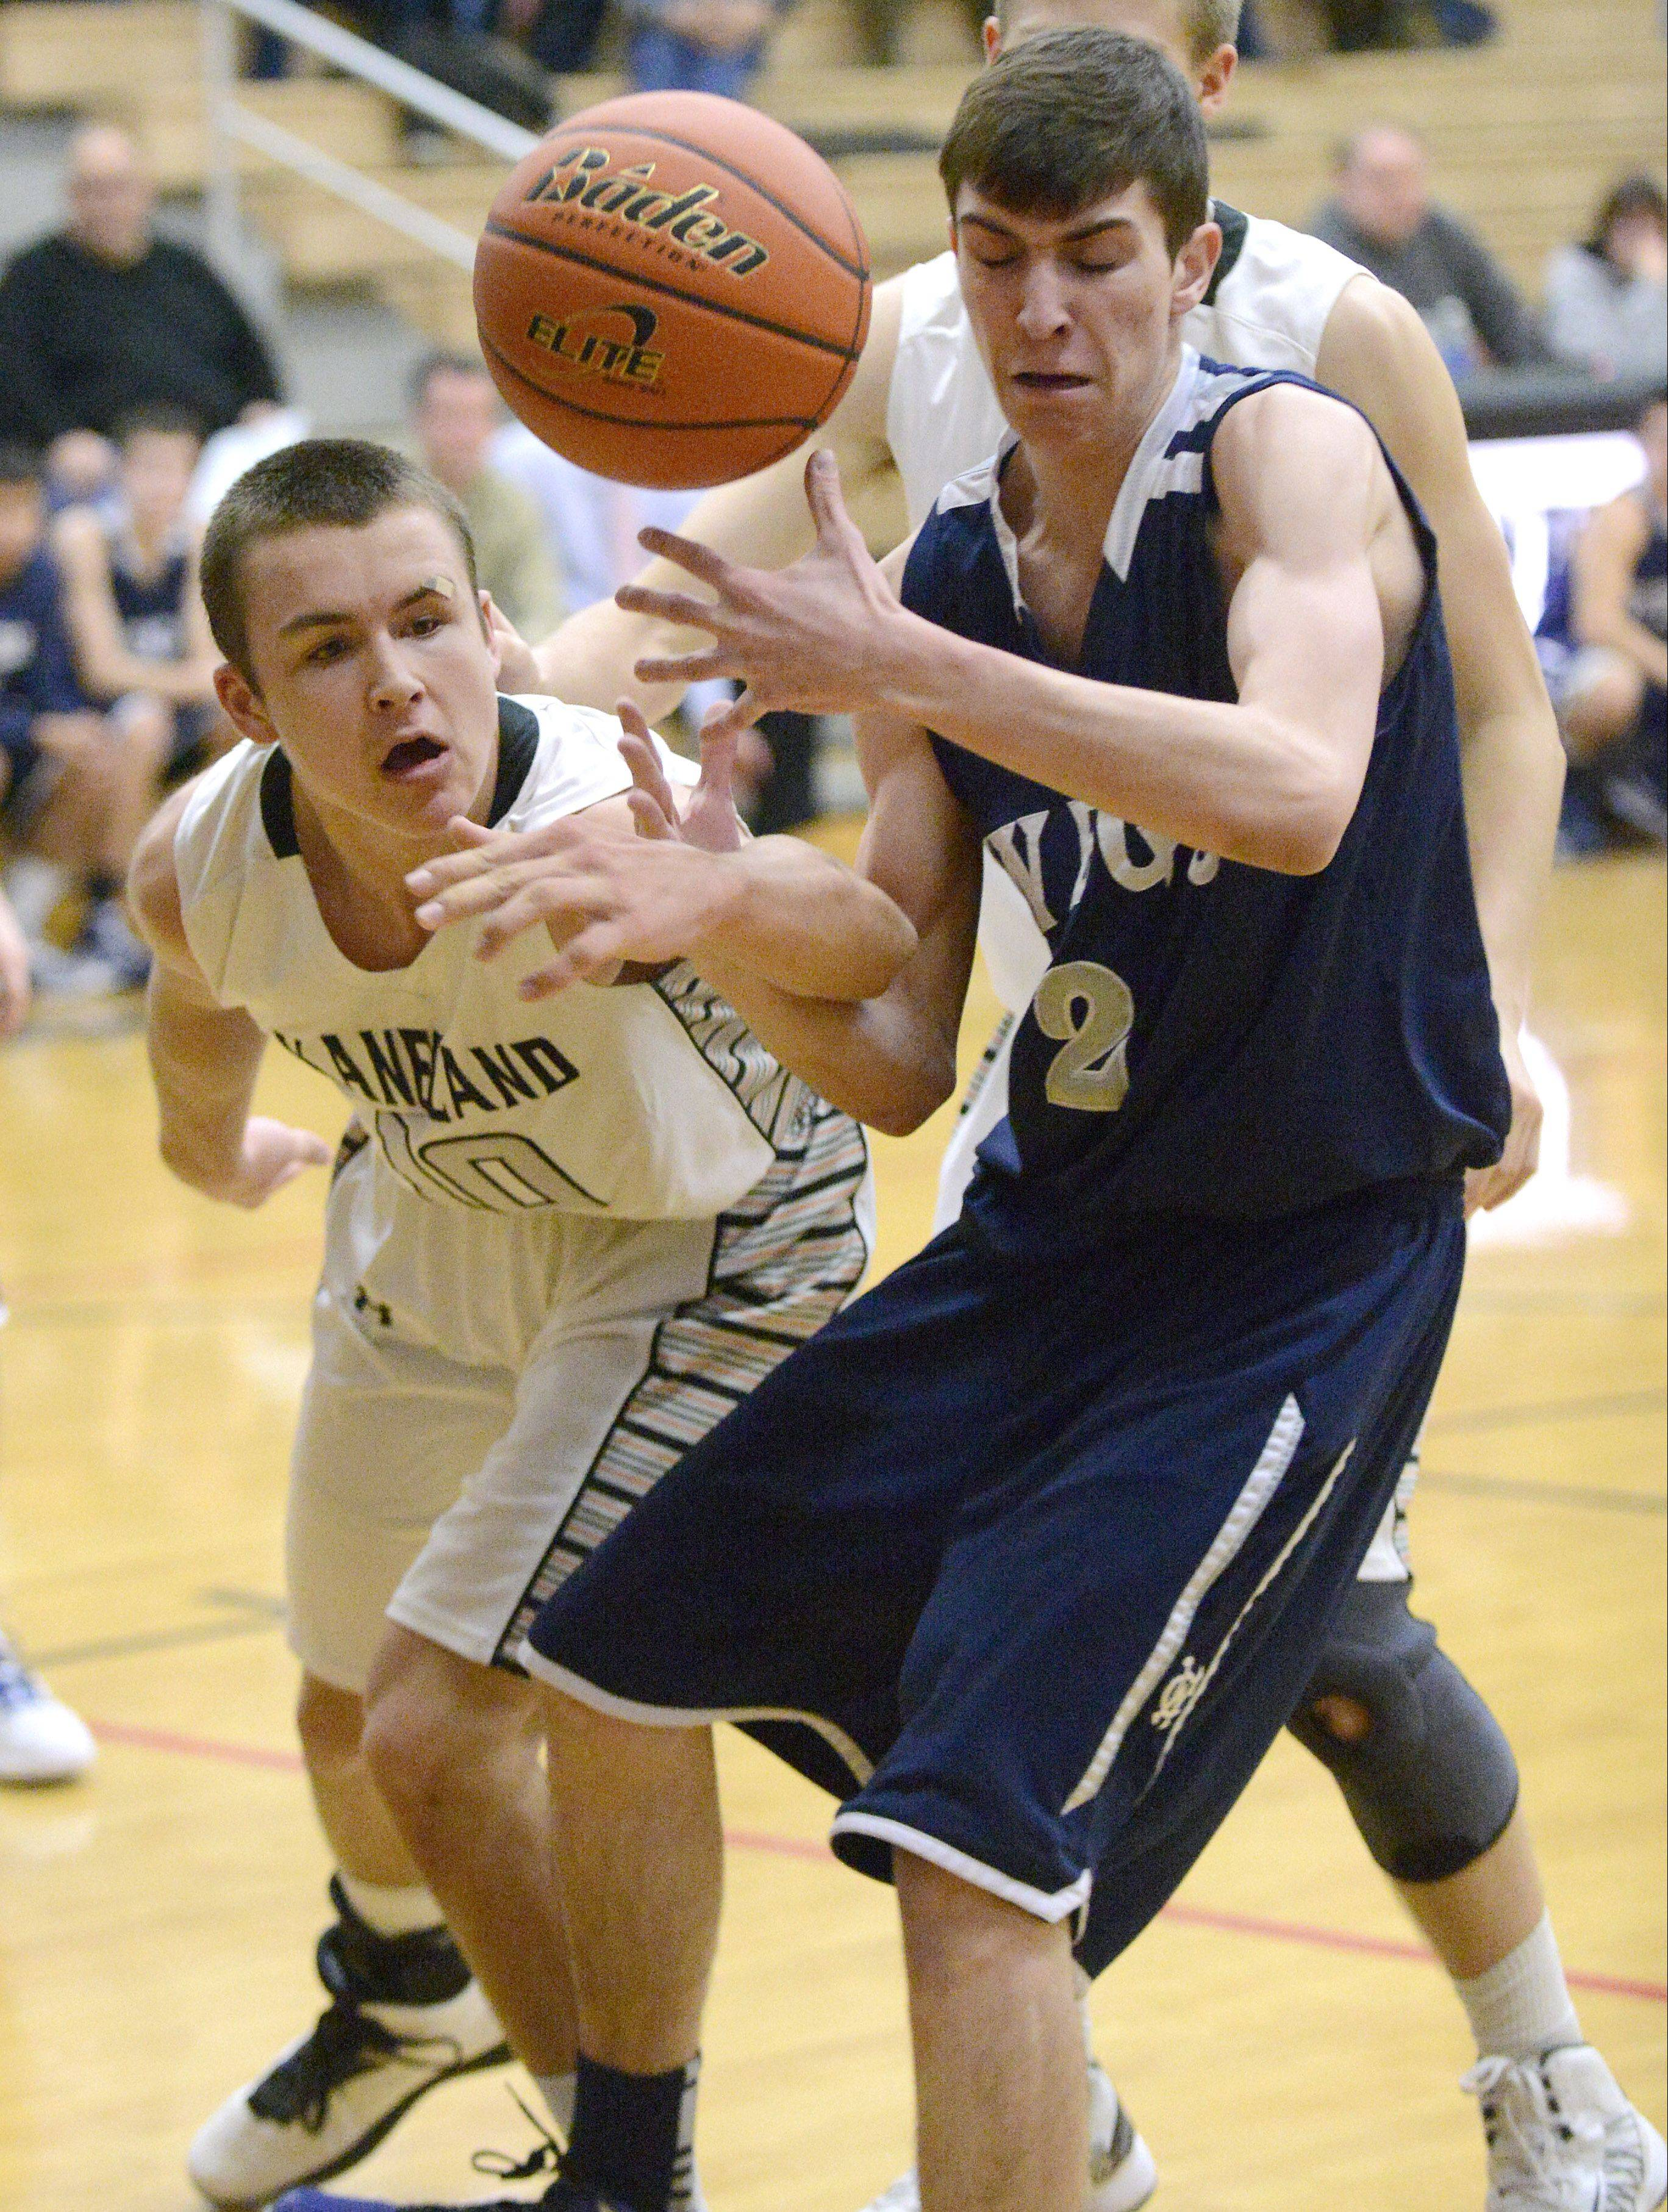 West Chicago's Jimmy Rizzo and Kaneland's Tyler Carlson fight for a loose ball in the second quarter on Tuesday.